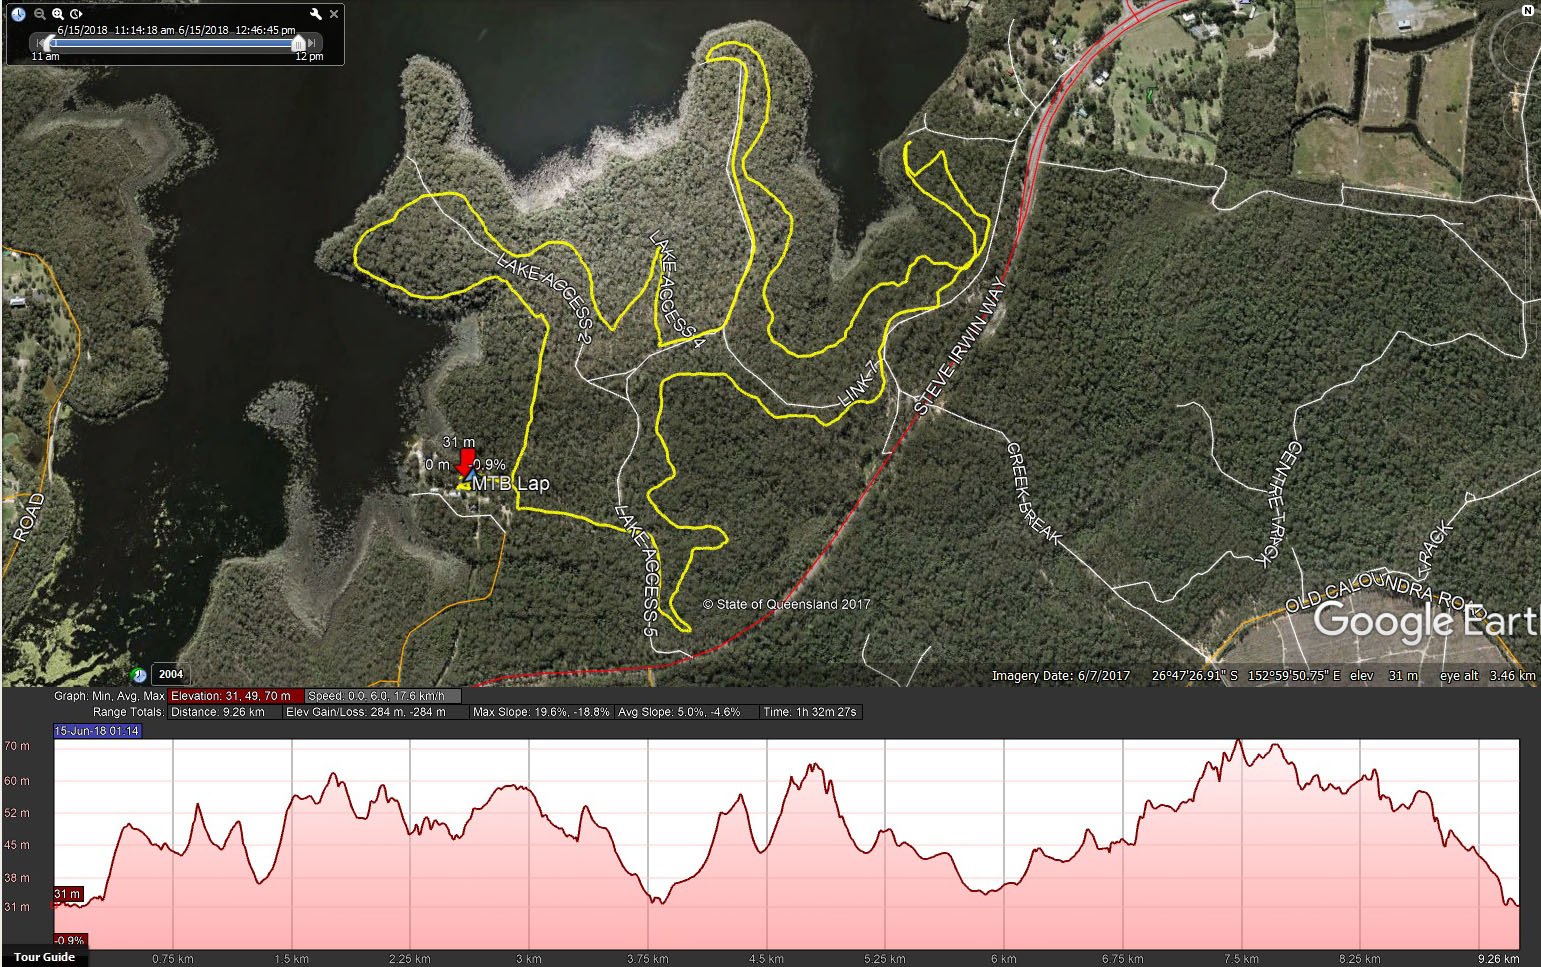 1a50a9d9b89 The mountain bike course is a 9.5km lap that takes in the flowing single  track trails within Ferny Forest. The course will test riders skills and  endurance ...